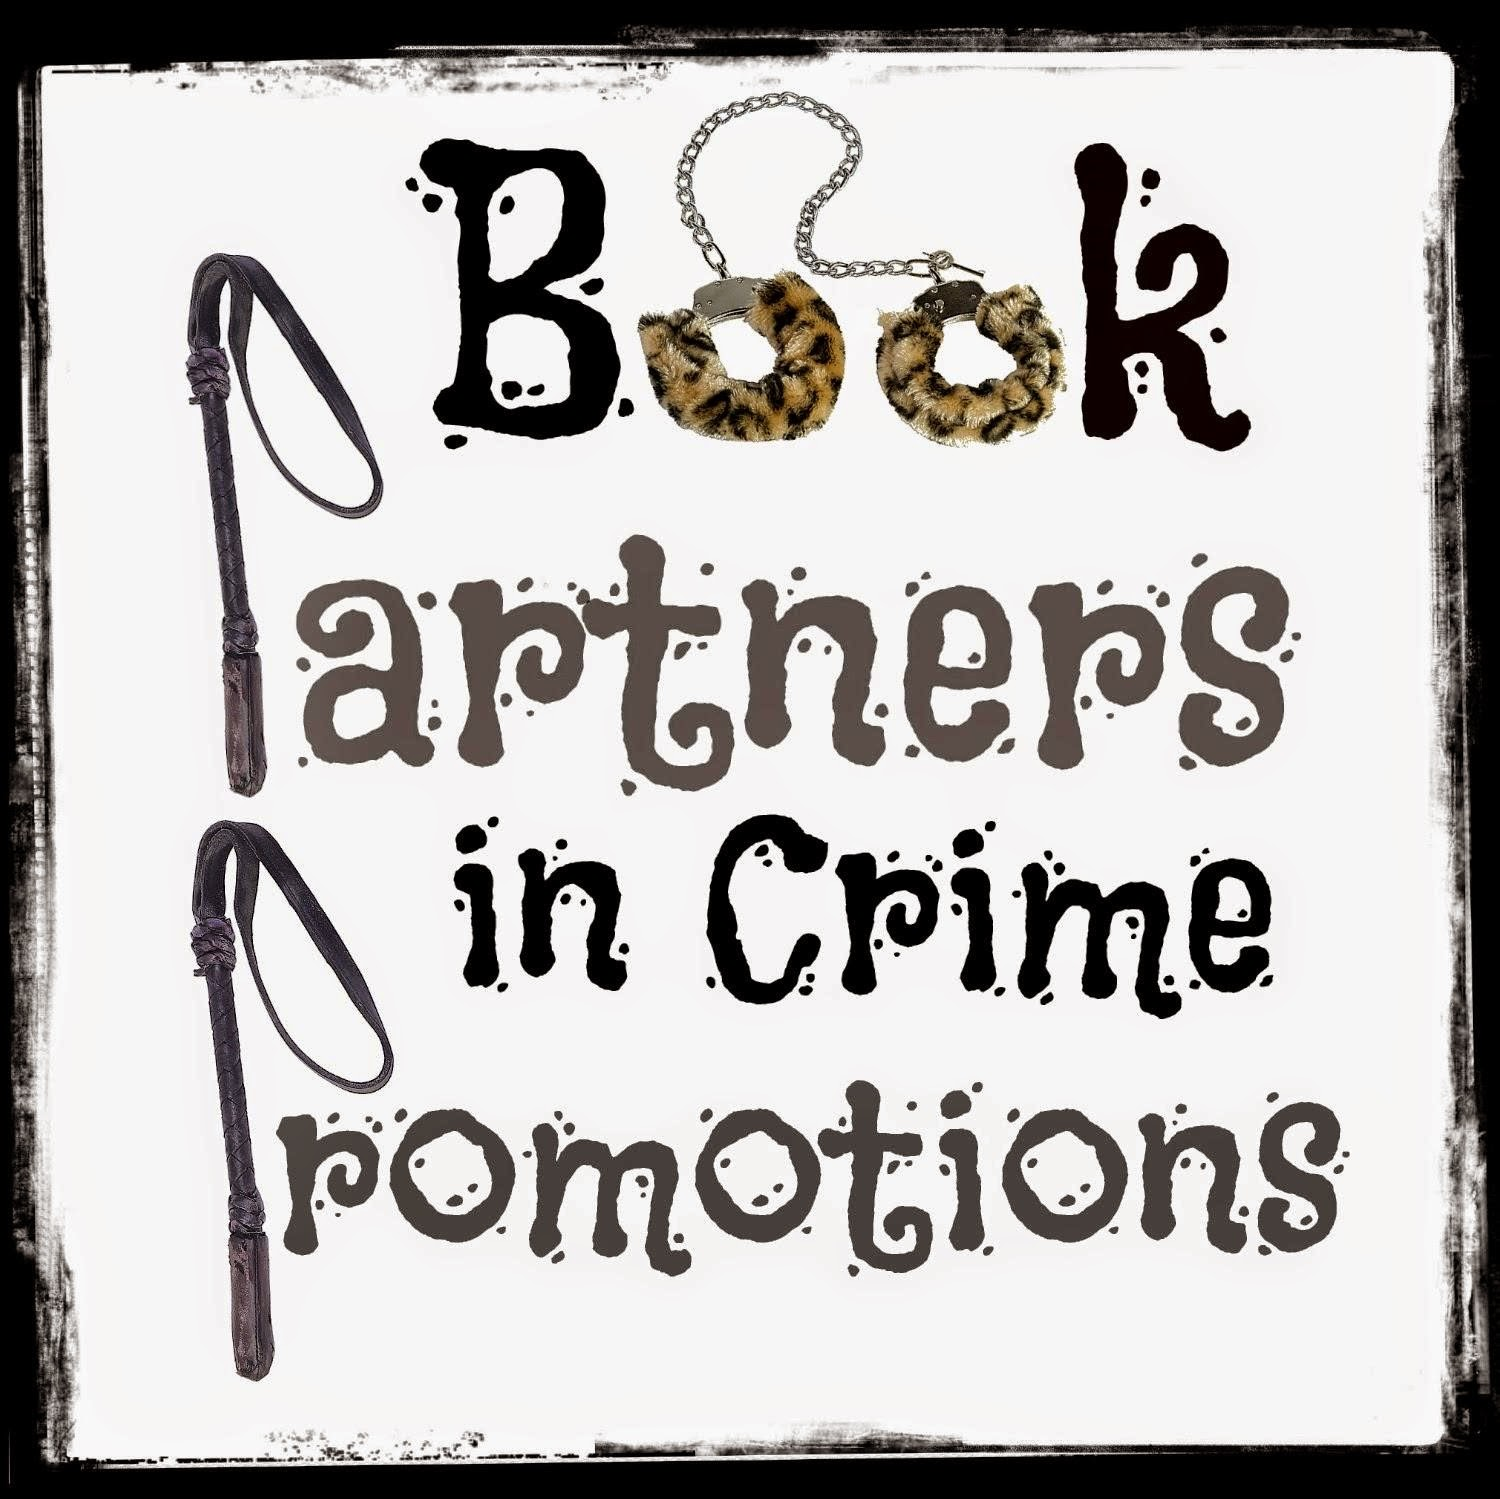 http://www.bookpartnersincrimepromotions.com/